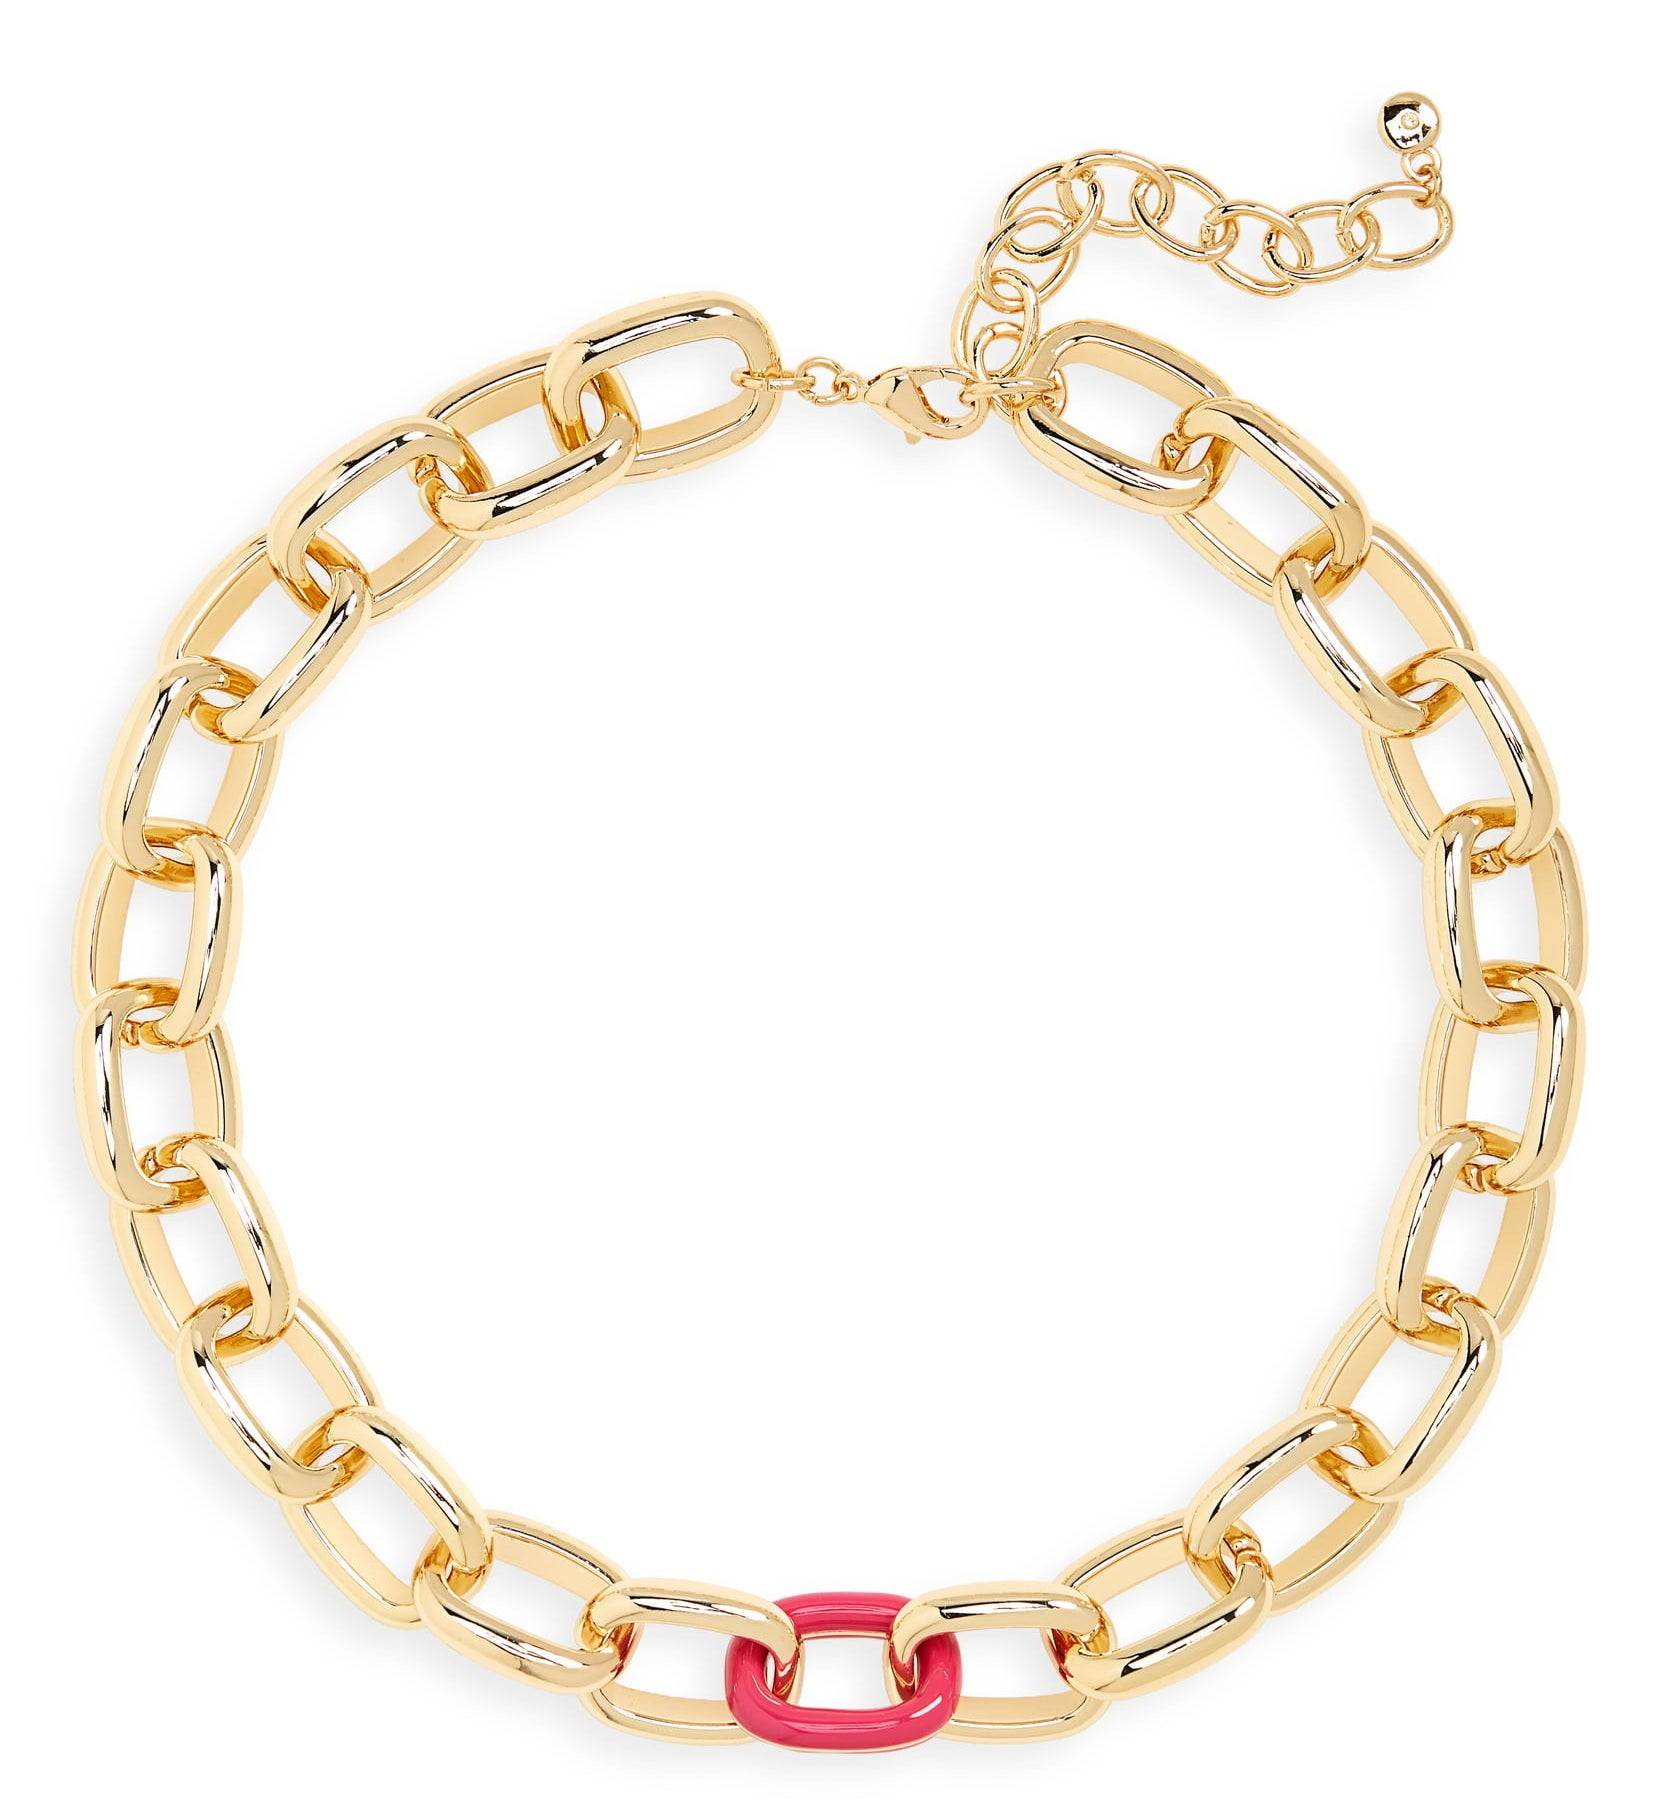 collar style necklace of gold tone large chains with one bright pink chain in the front middle